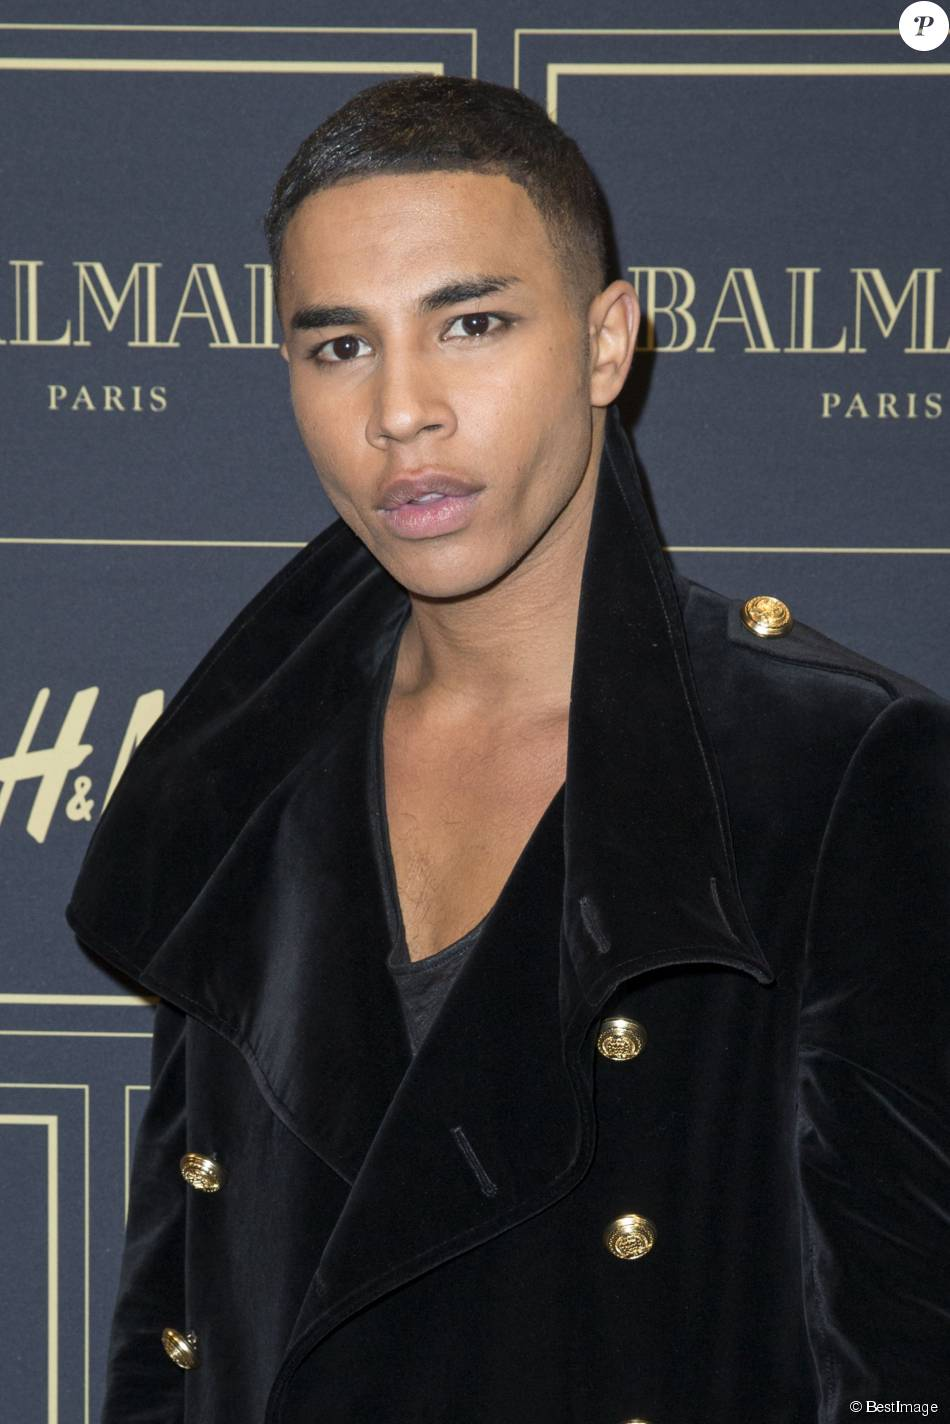 olivier rousteing directeur artistique de la maison. Black Bedroom Furniture Sets. Home Design Ideas